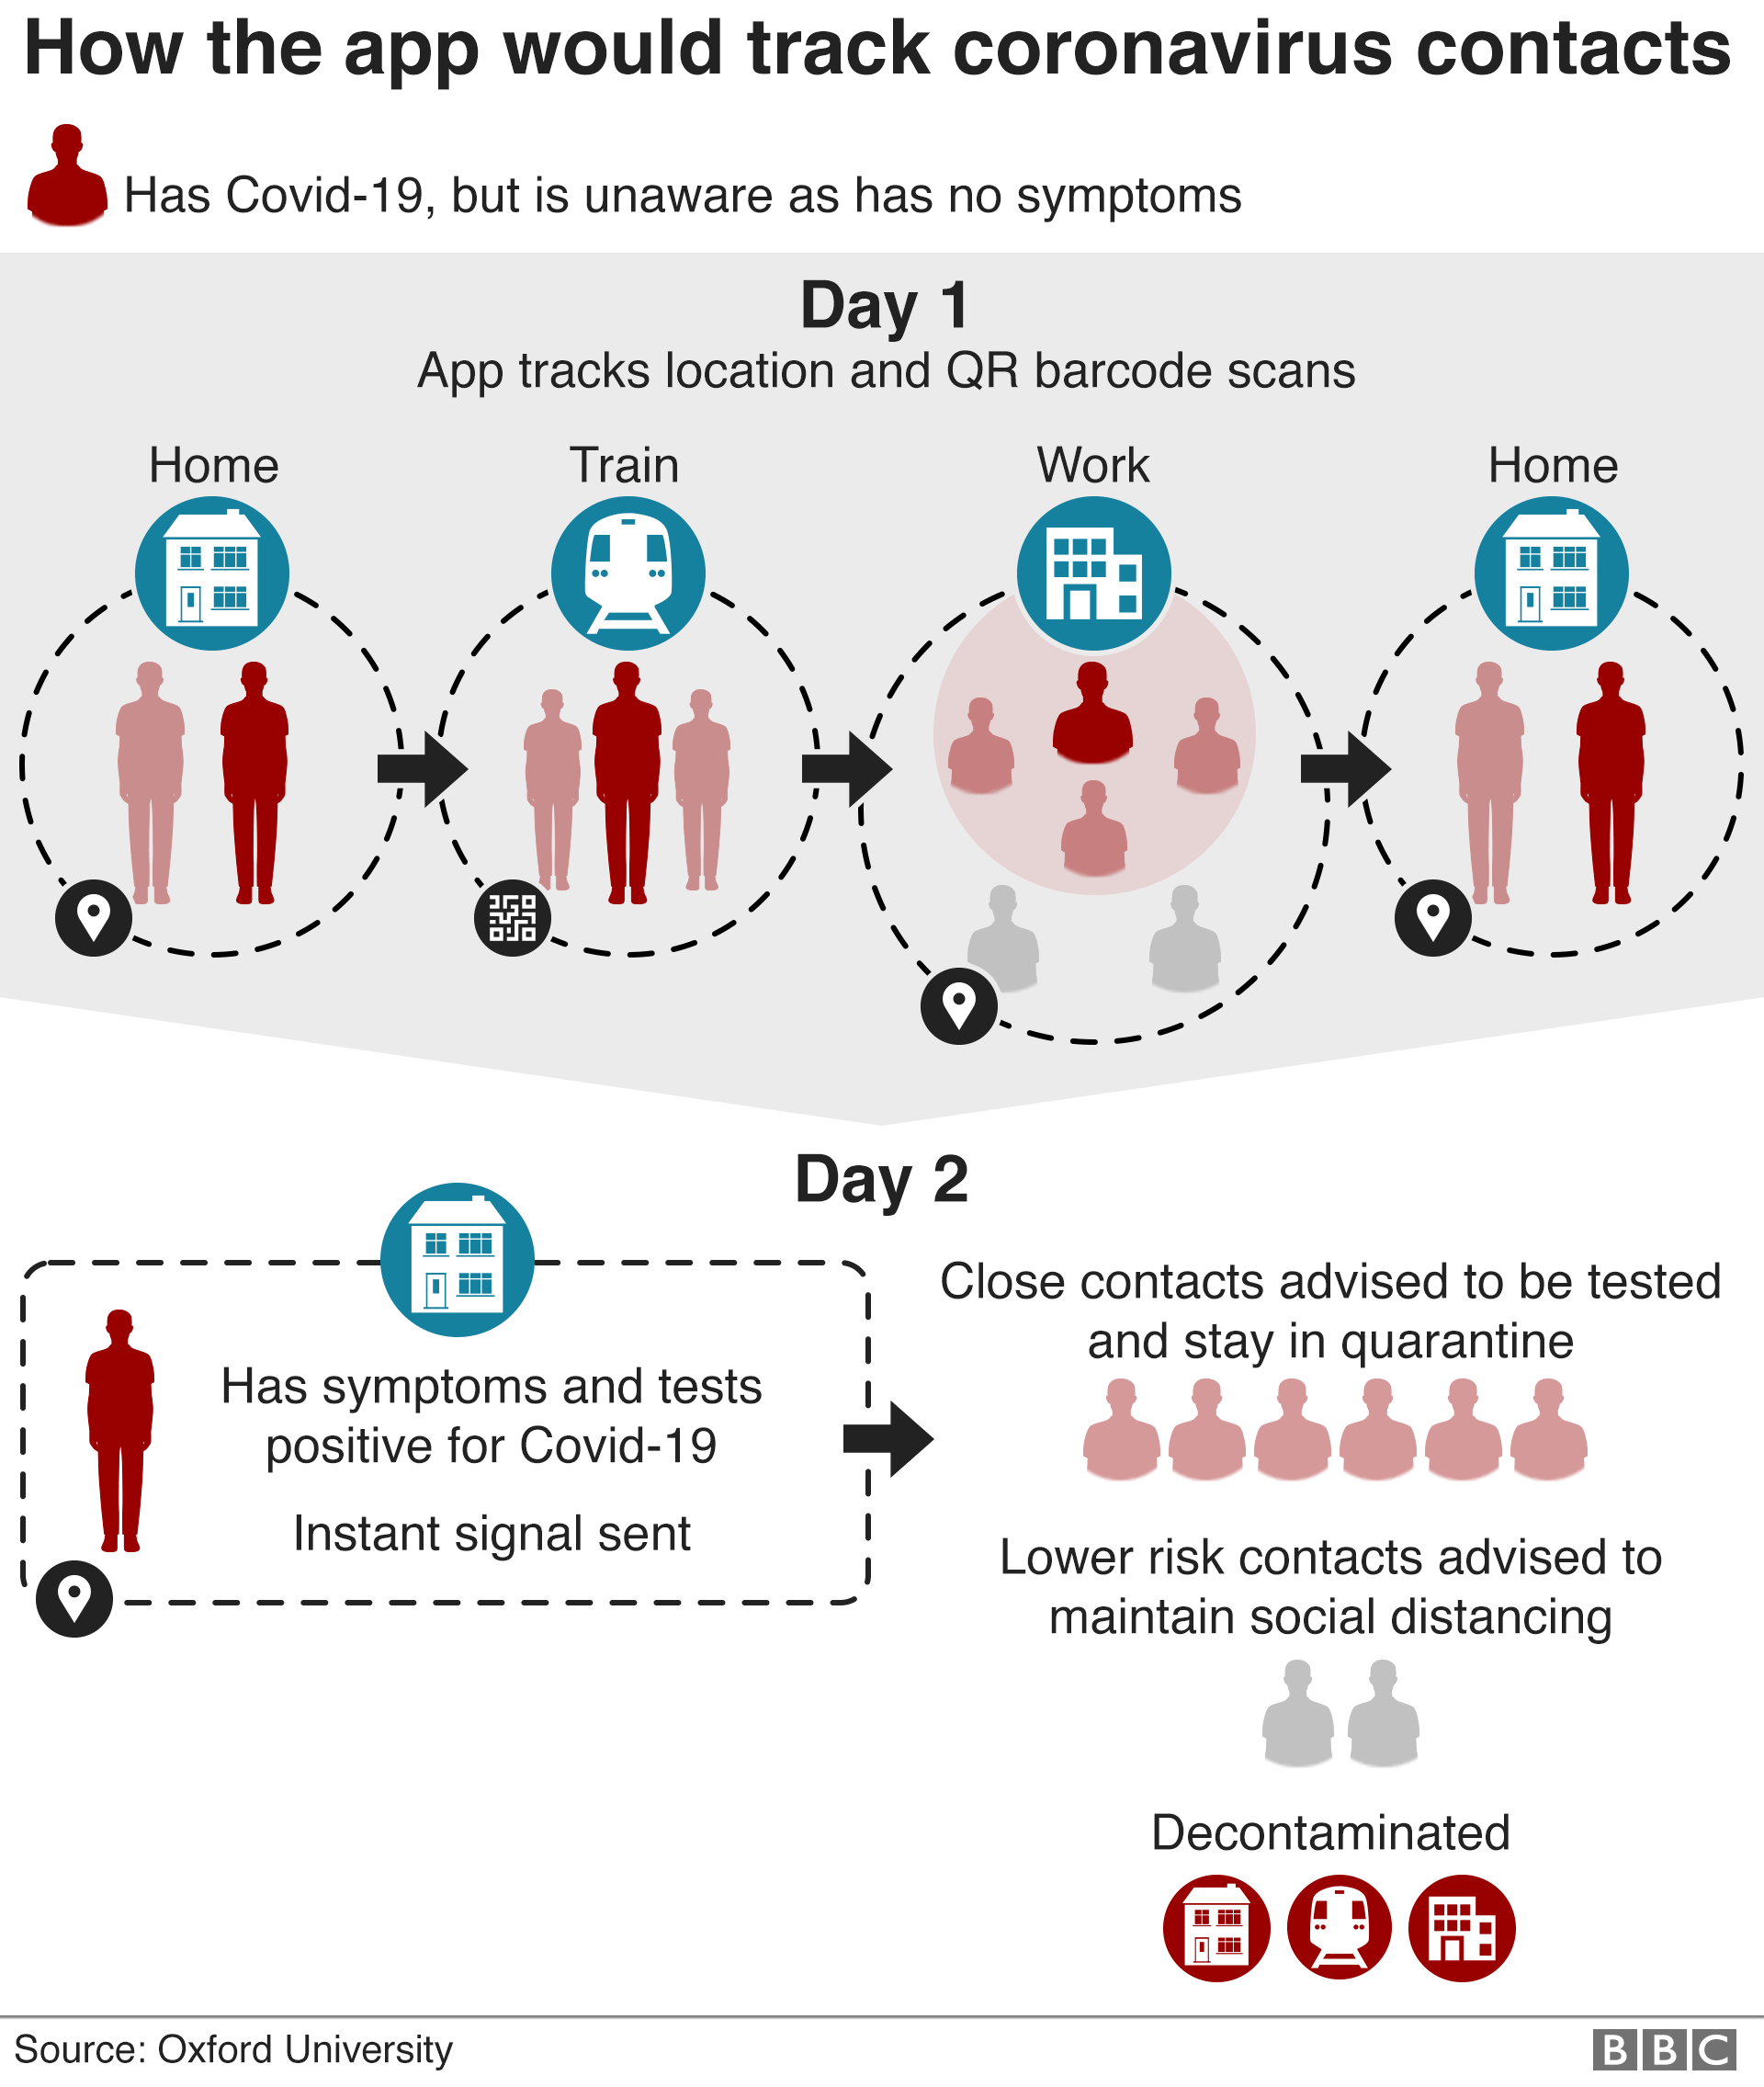 Infographic shows how app would trace contacts using location and QR barcode scans and send them a notification when they'd been close to someone diagnosed with Covid-19